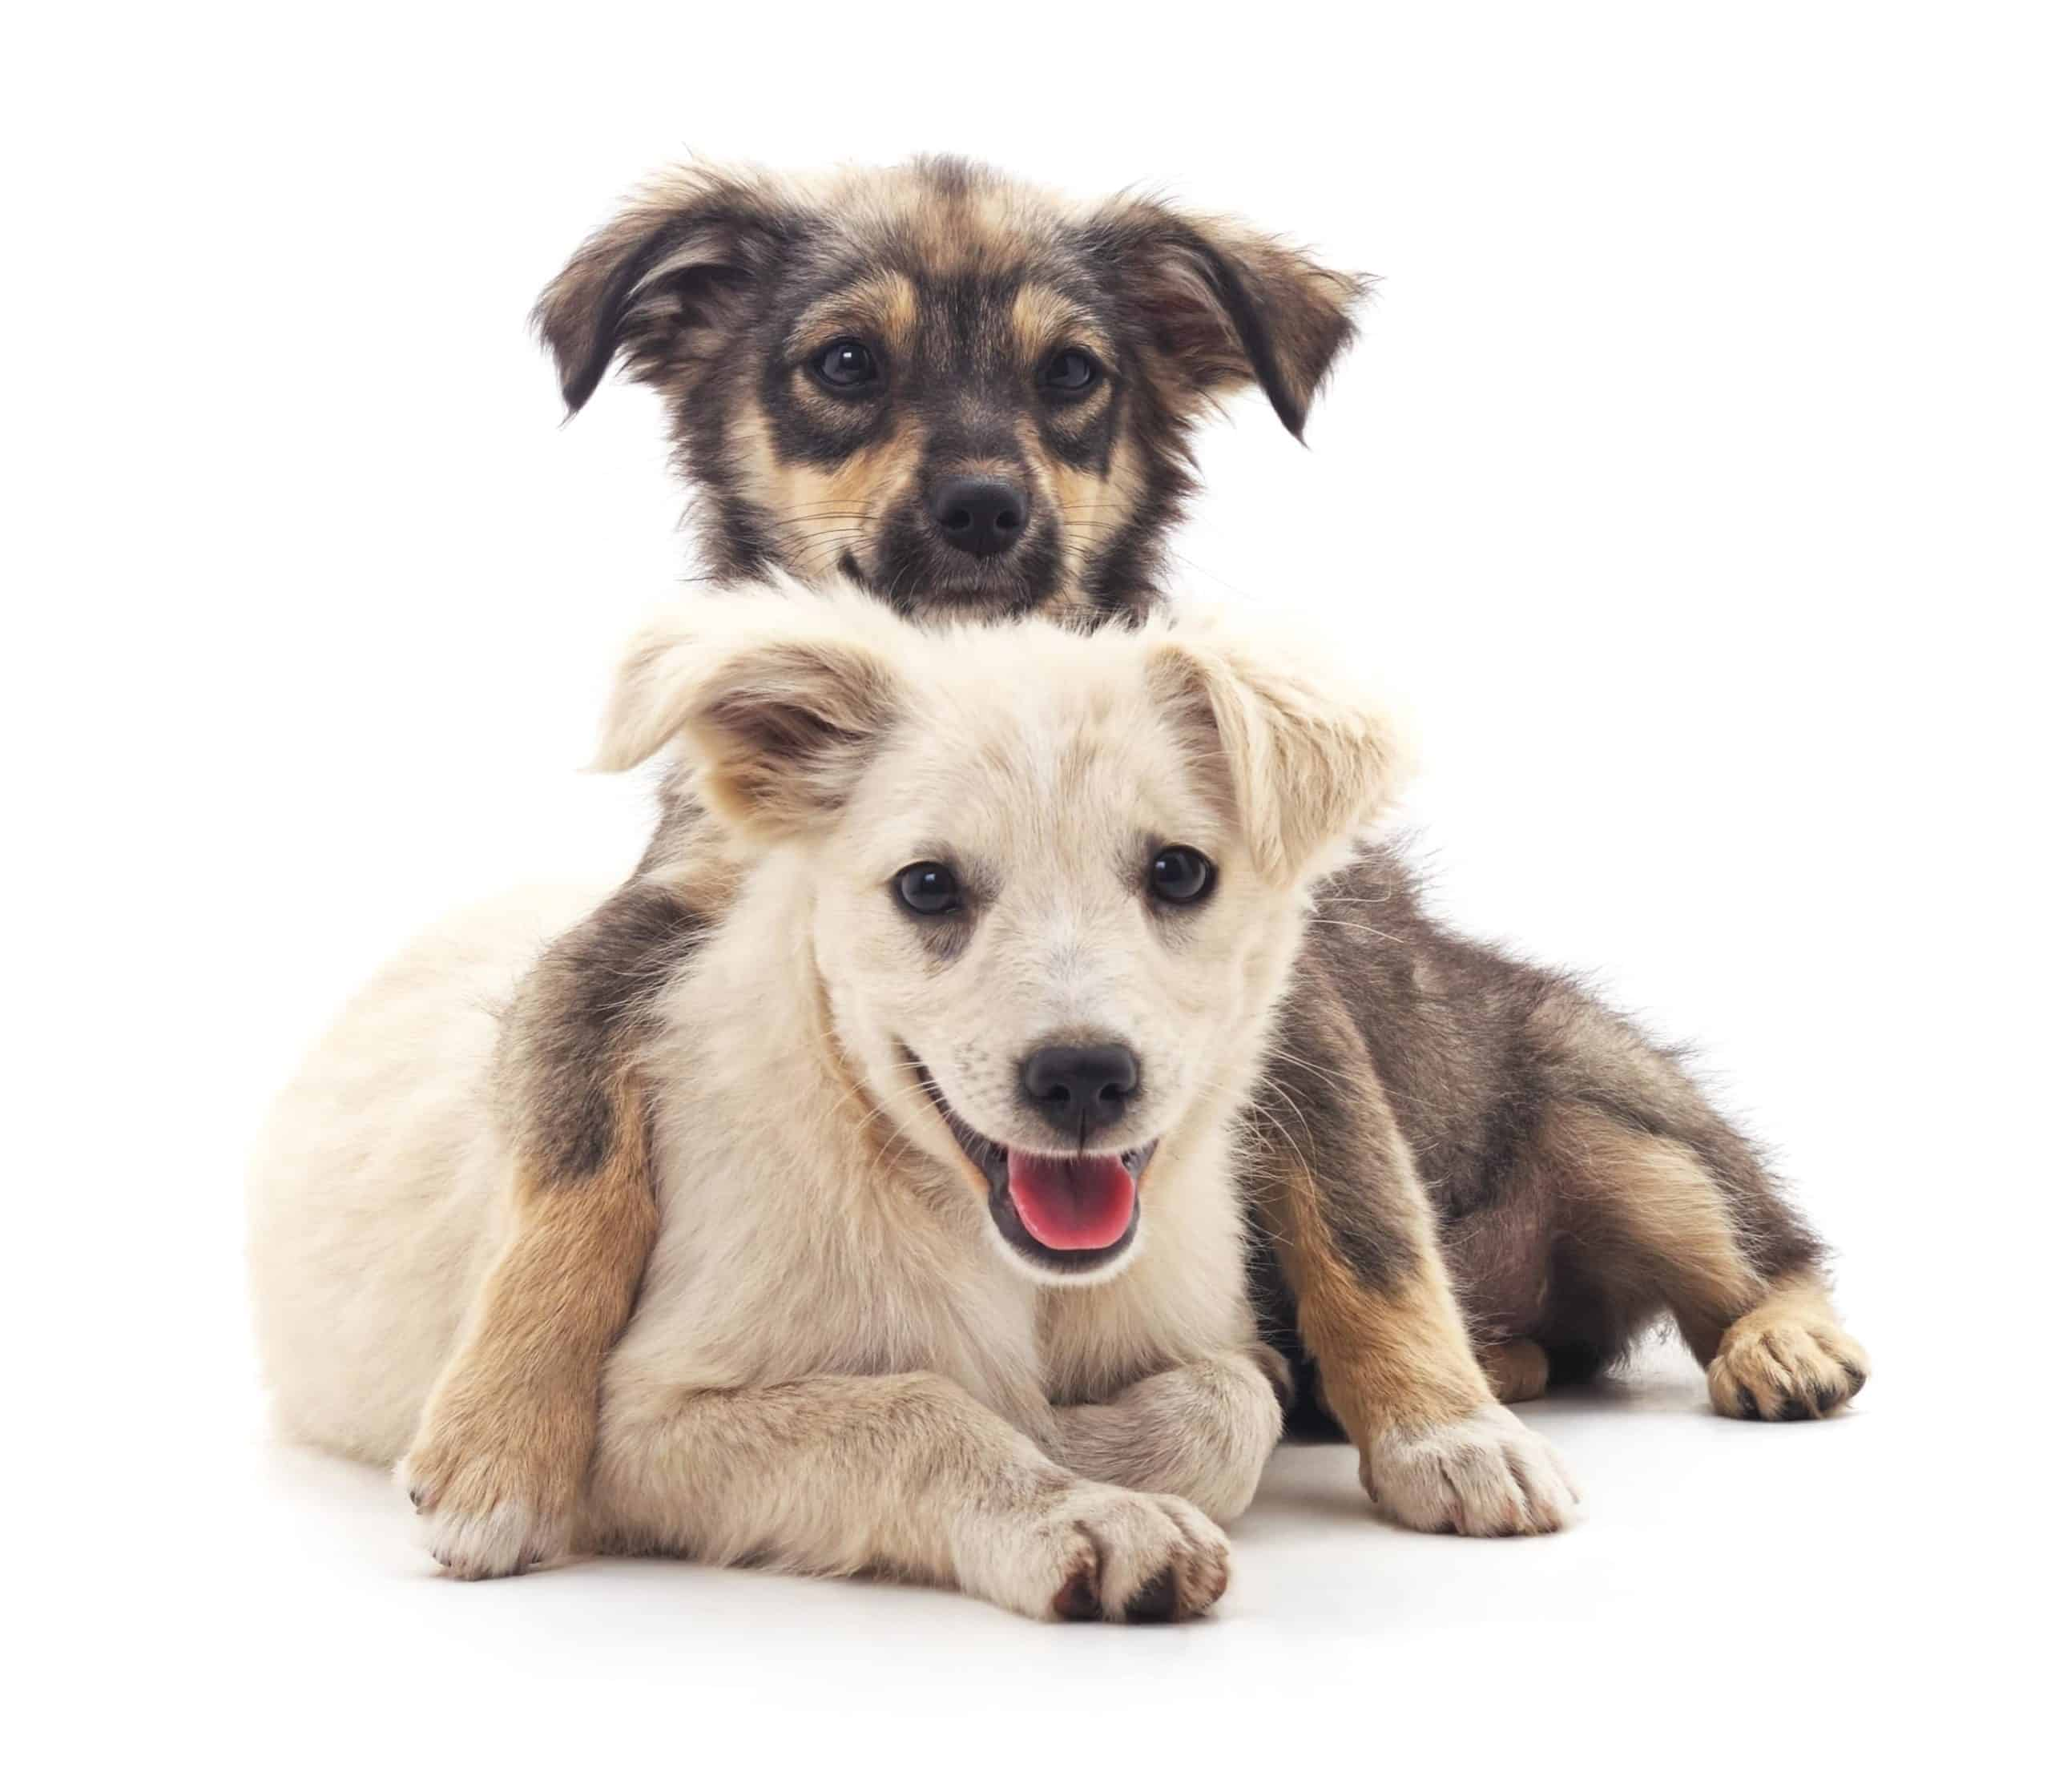 Two happy puppies on a white background. Right time to add a dog: Are you prepared to care for a pet? If you are not ready to make that commitment, you are not ready for a pet.